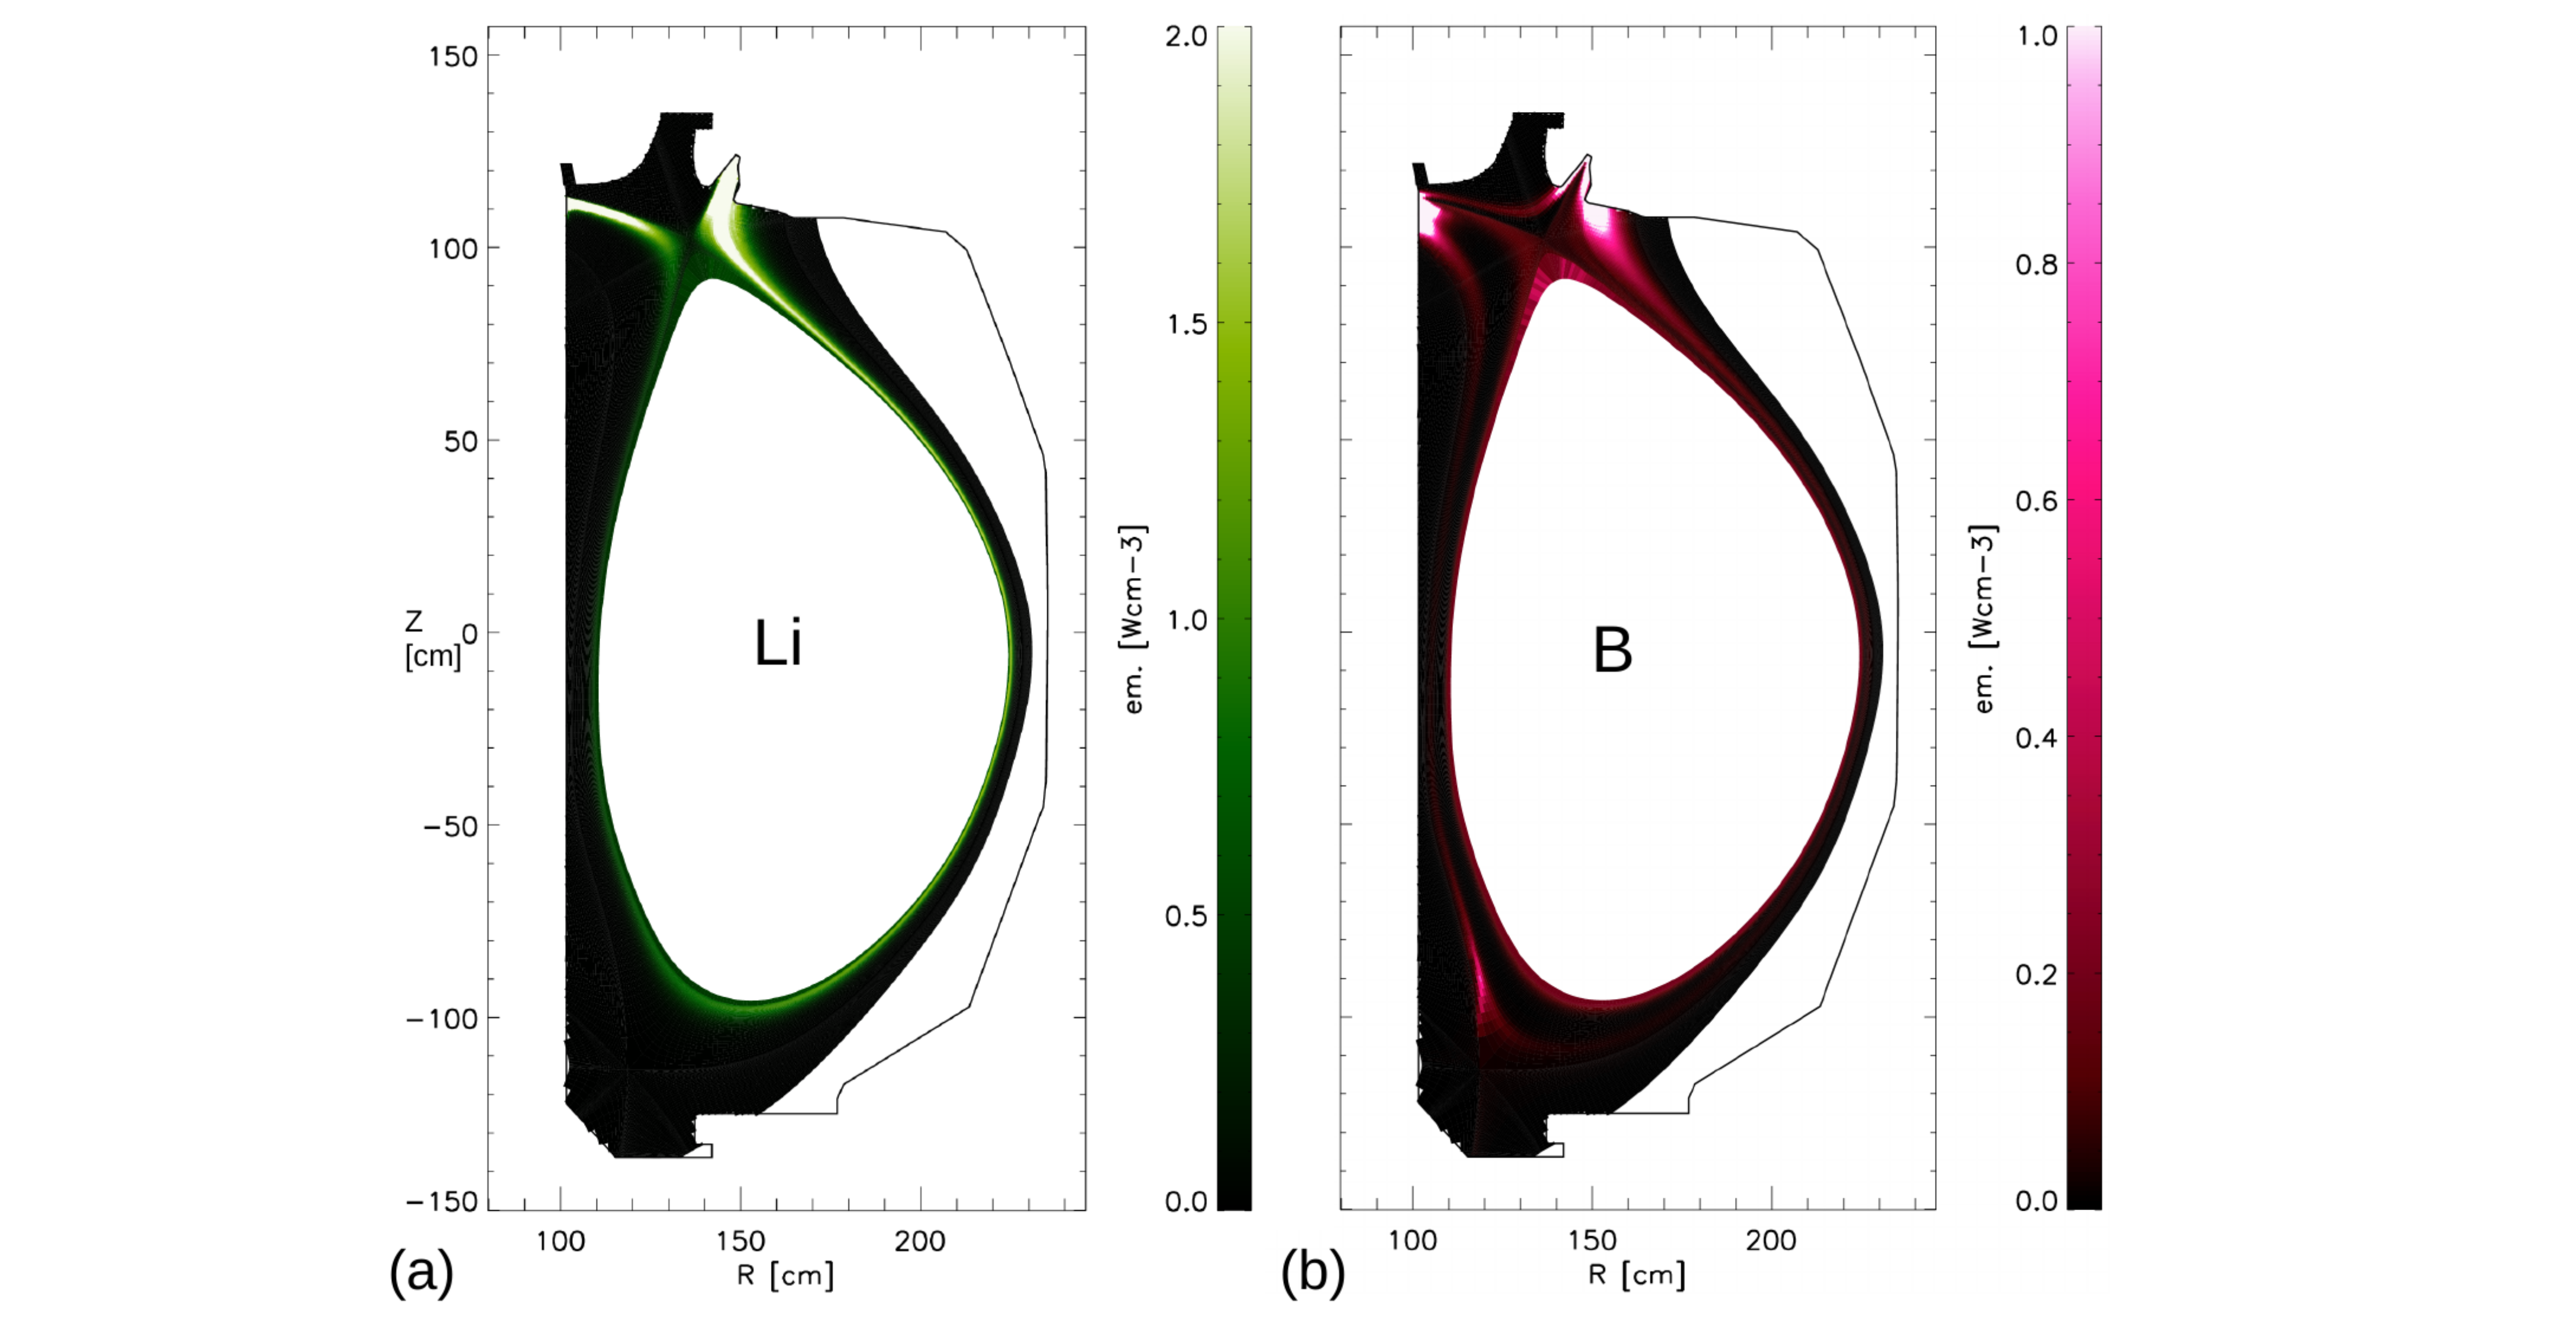 Distribution of total radiated power modeled with EMC3-EIRENE for (a) lithium and (b) boron impurities, showing qualitative and quantitative differences in the power dissipation.